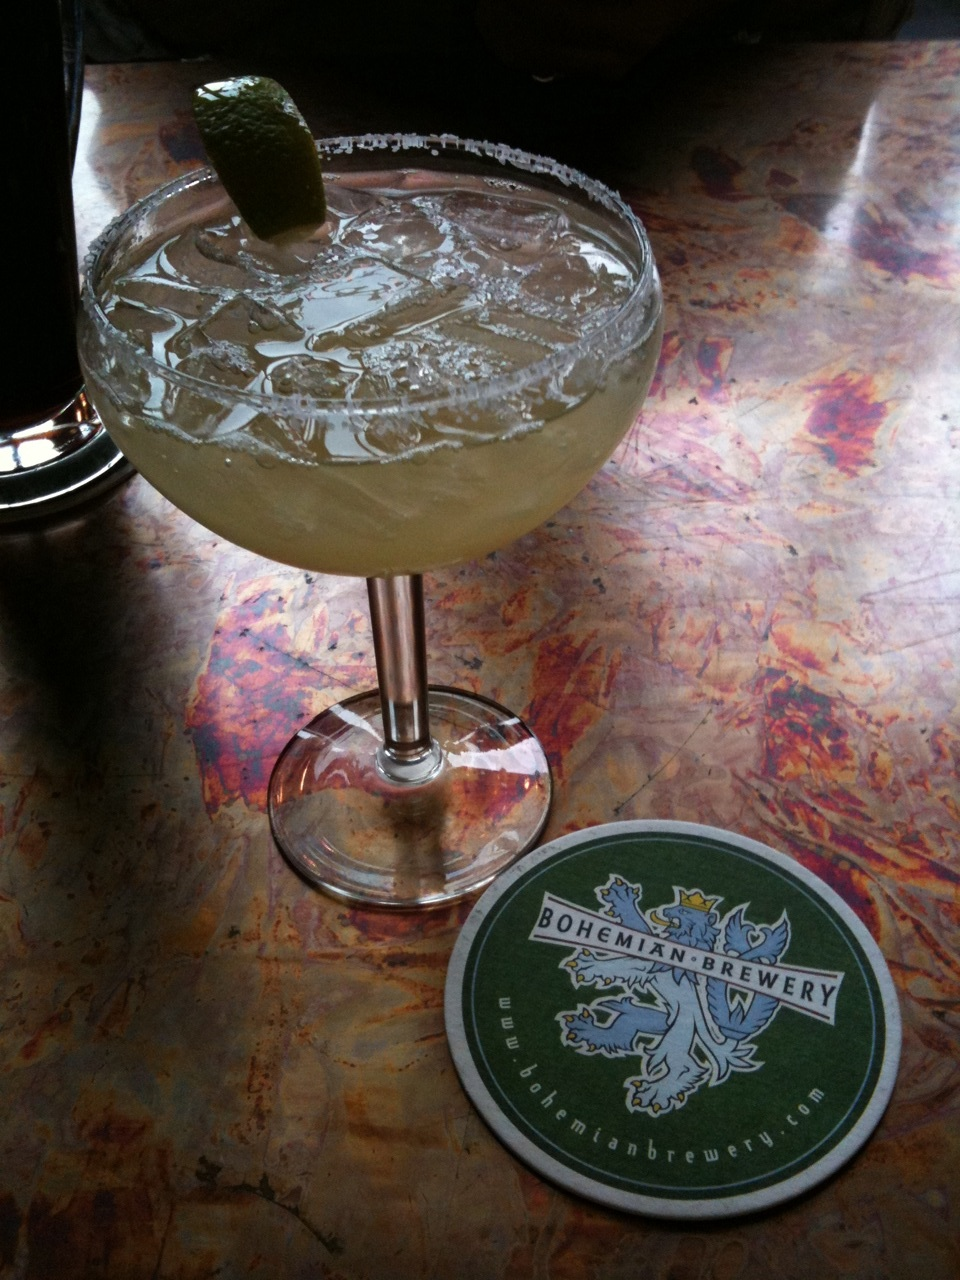 Sampling SLC: margaritas